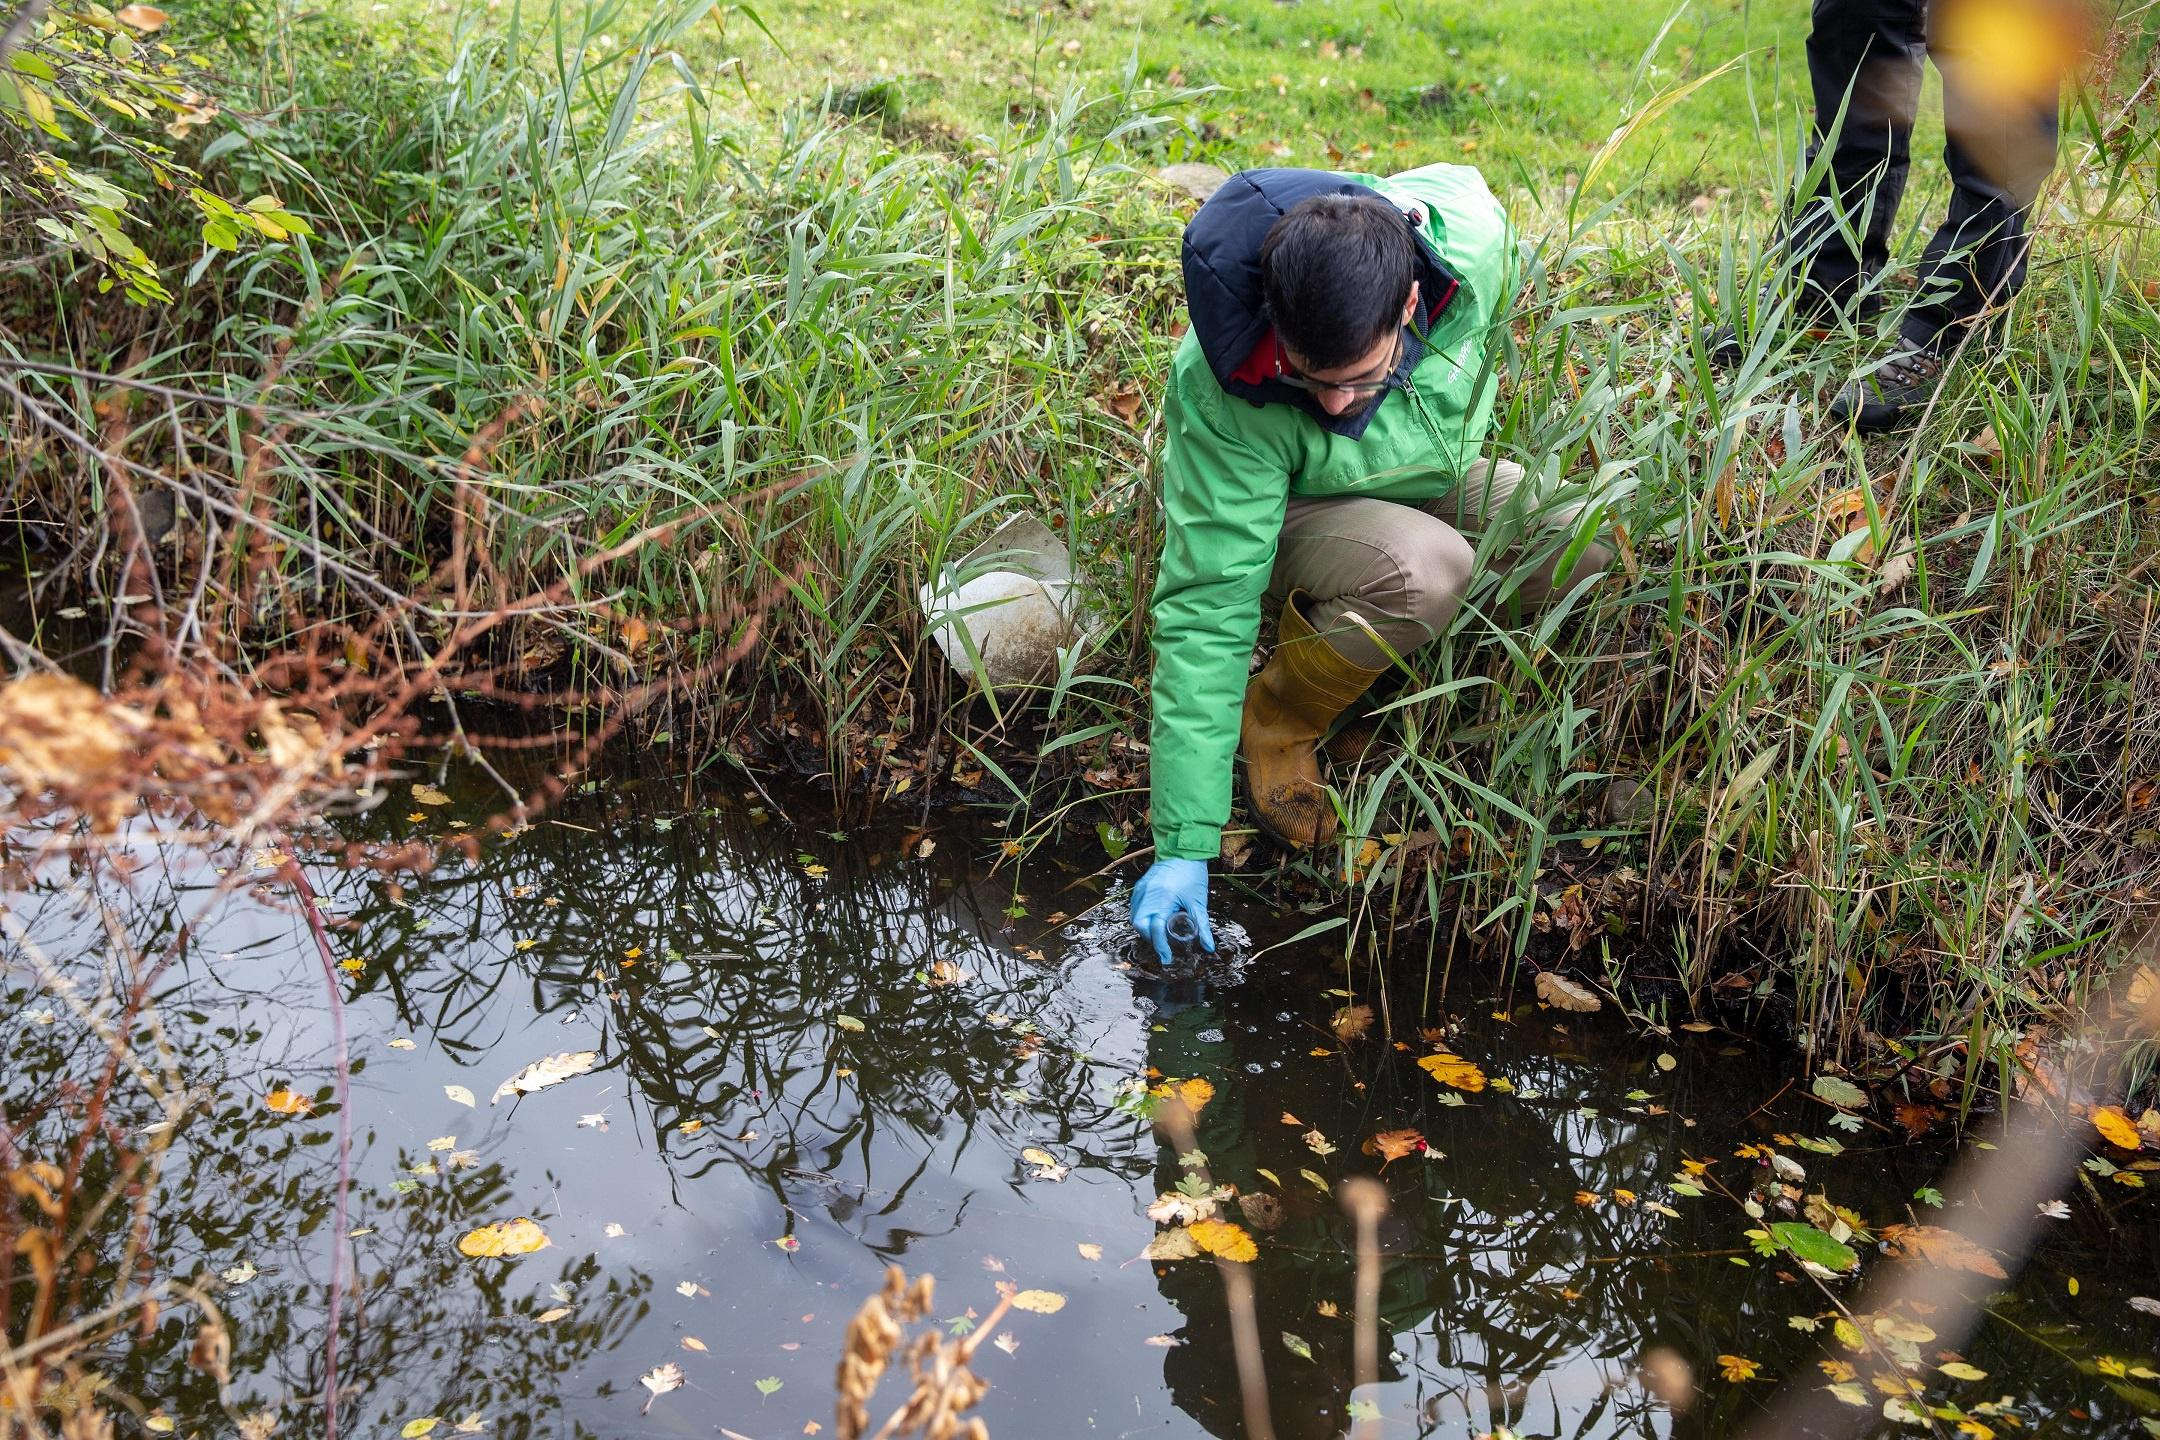 Pesticides and antibiotics polluting streams across Europe